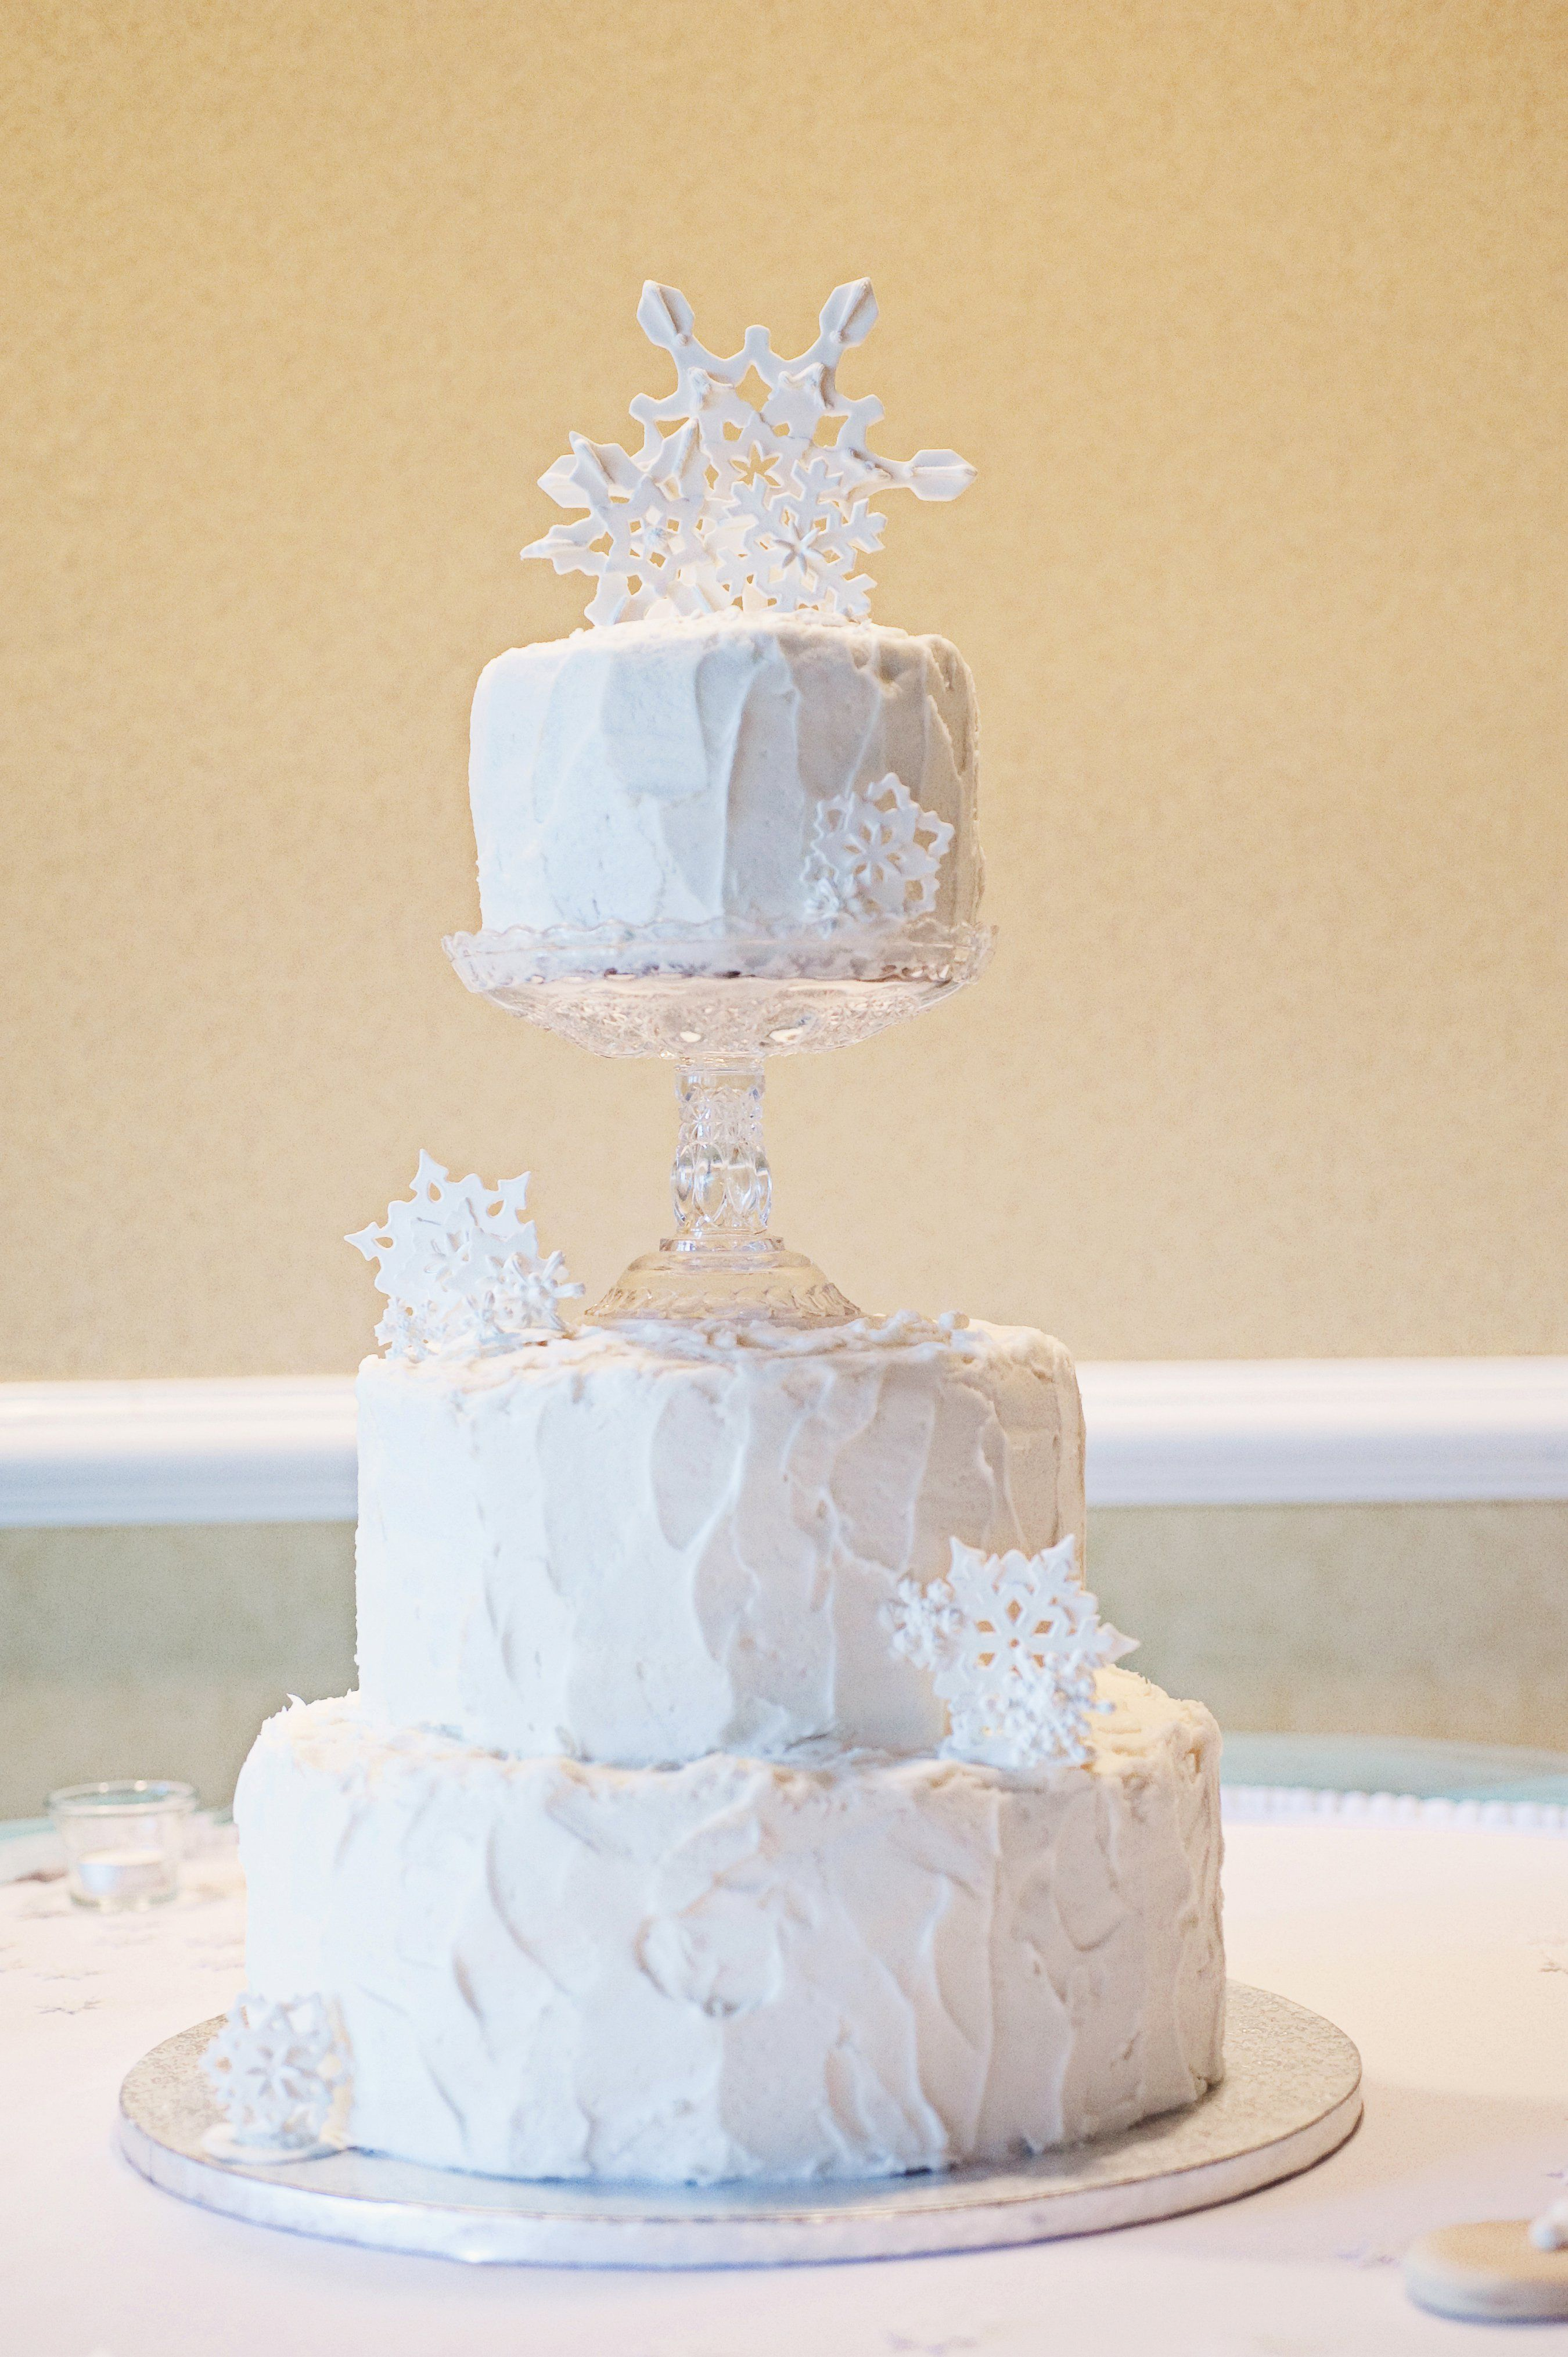 Winter Snowflake Cake | Wedding_ LaToya | Pinterest | Snowflake cake ...